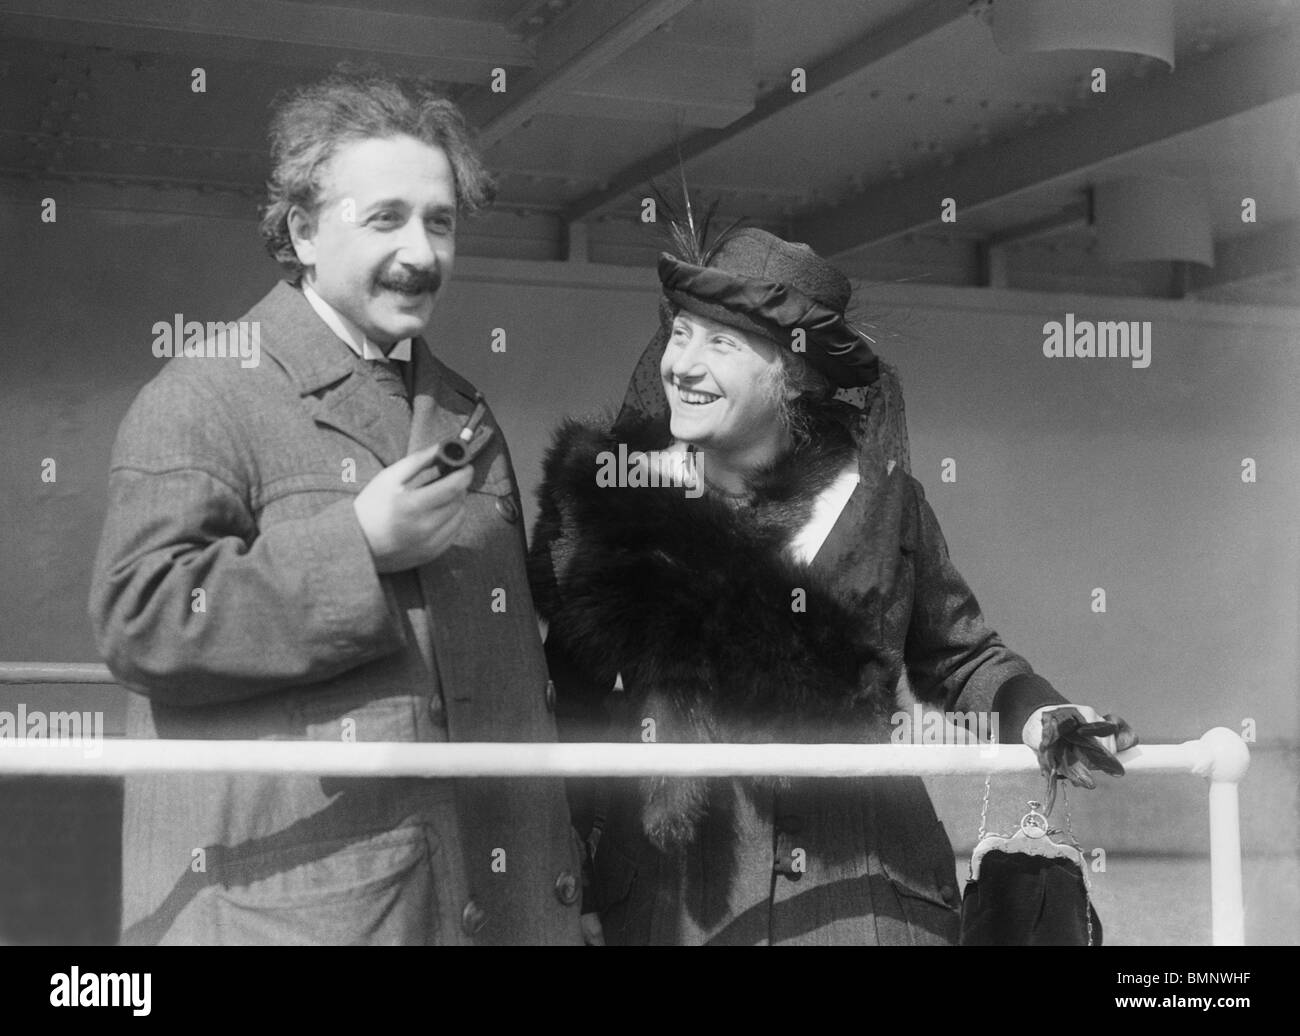 Photo circa 1920s of German theoretical physicist Albert Einstein (1879 - 1955) and his wife Elsa (1876 - 1936). - Stock Image